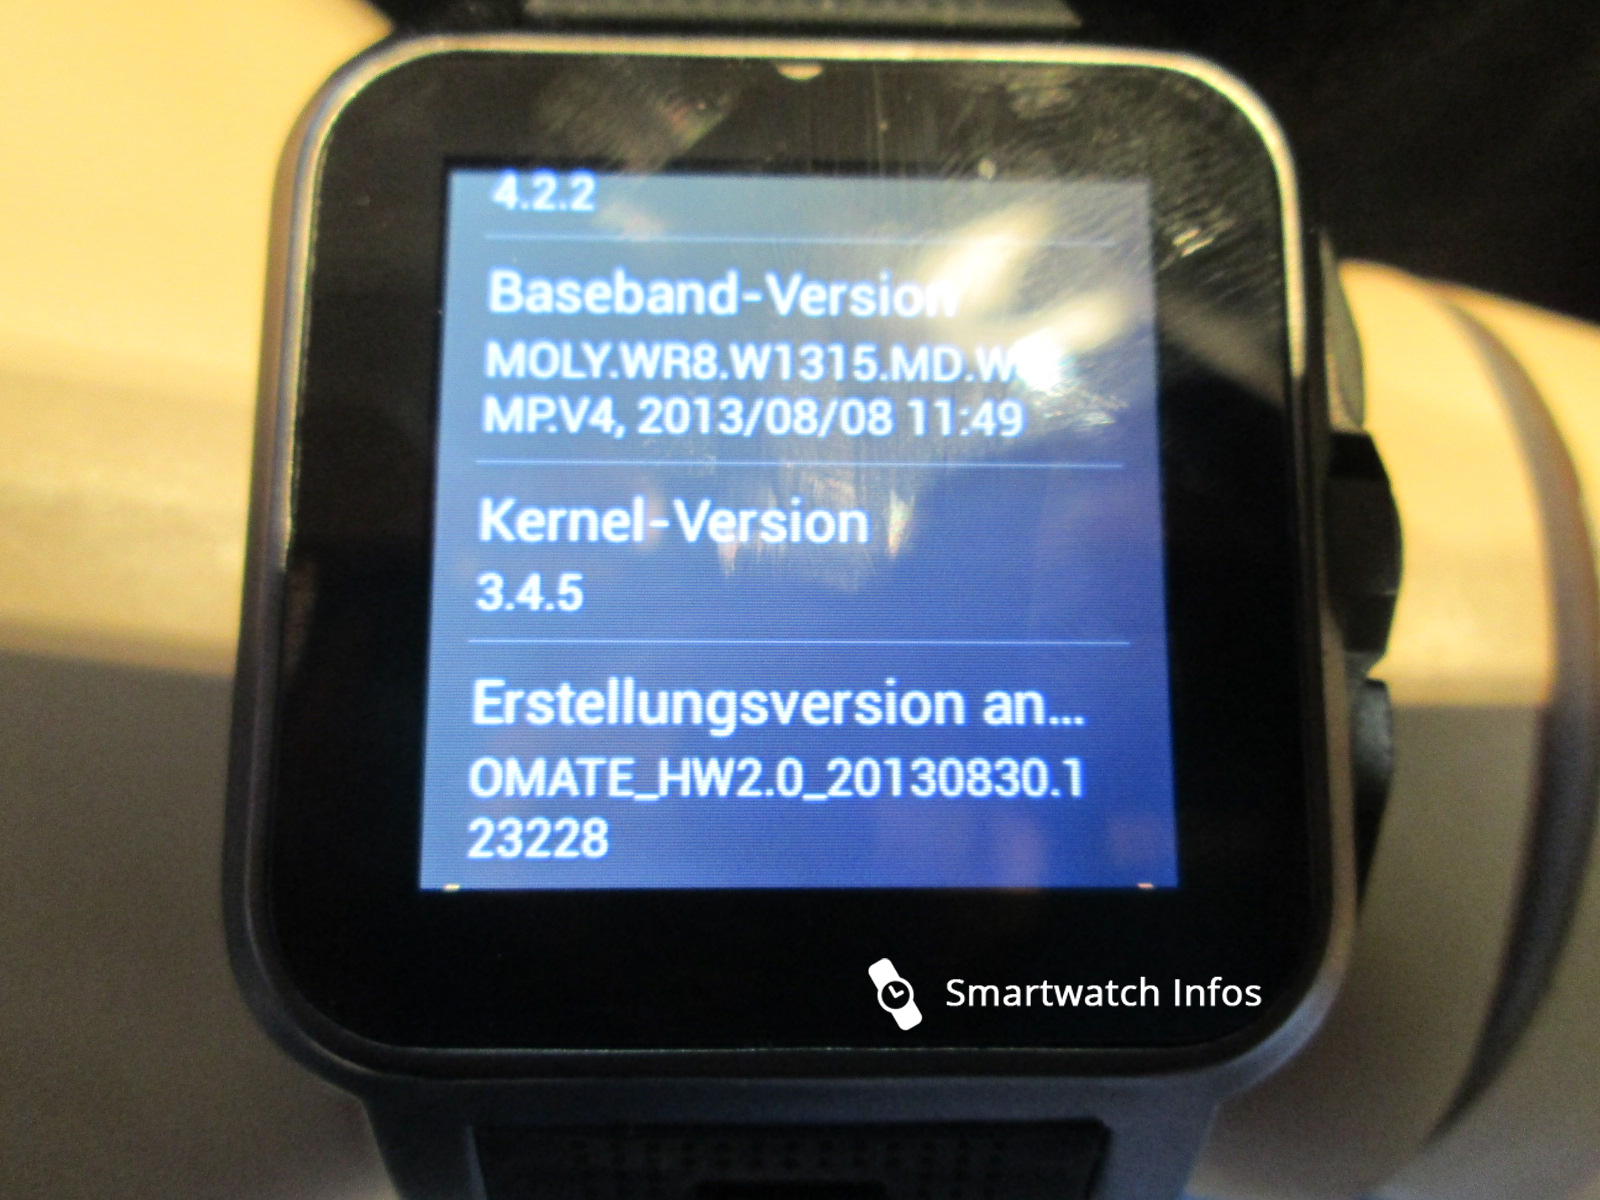 Pearl Smartwatch OS Info